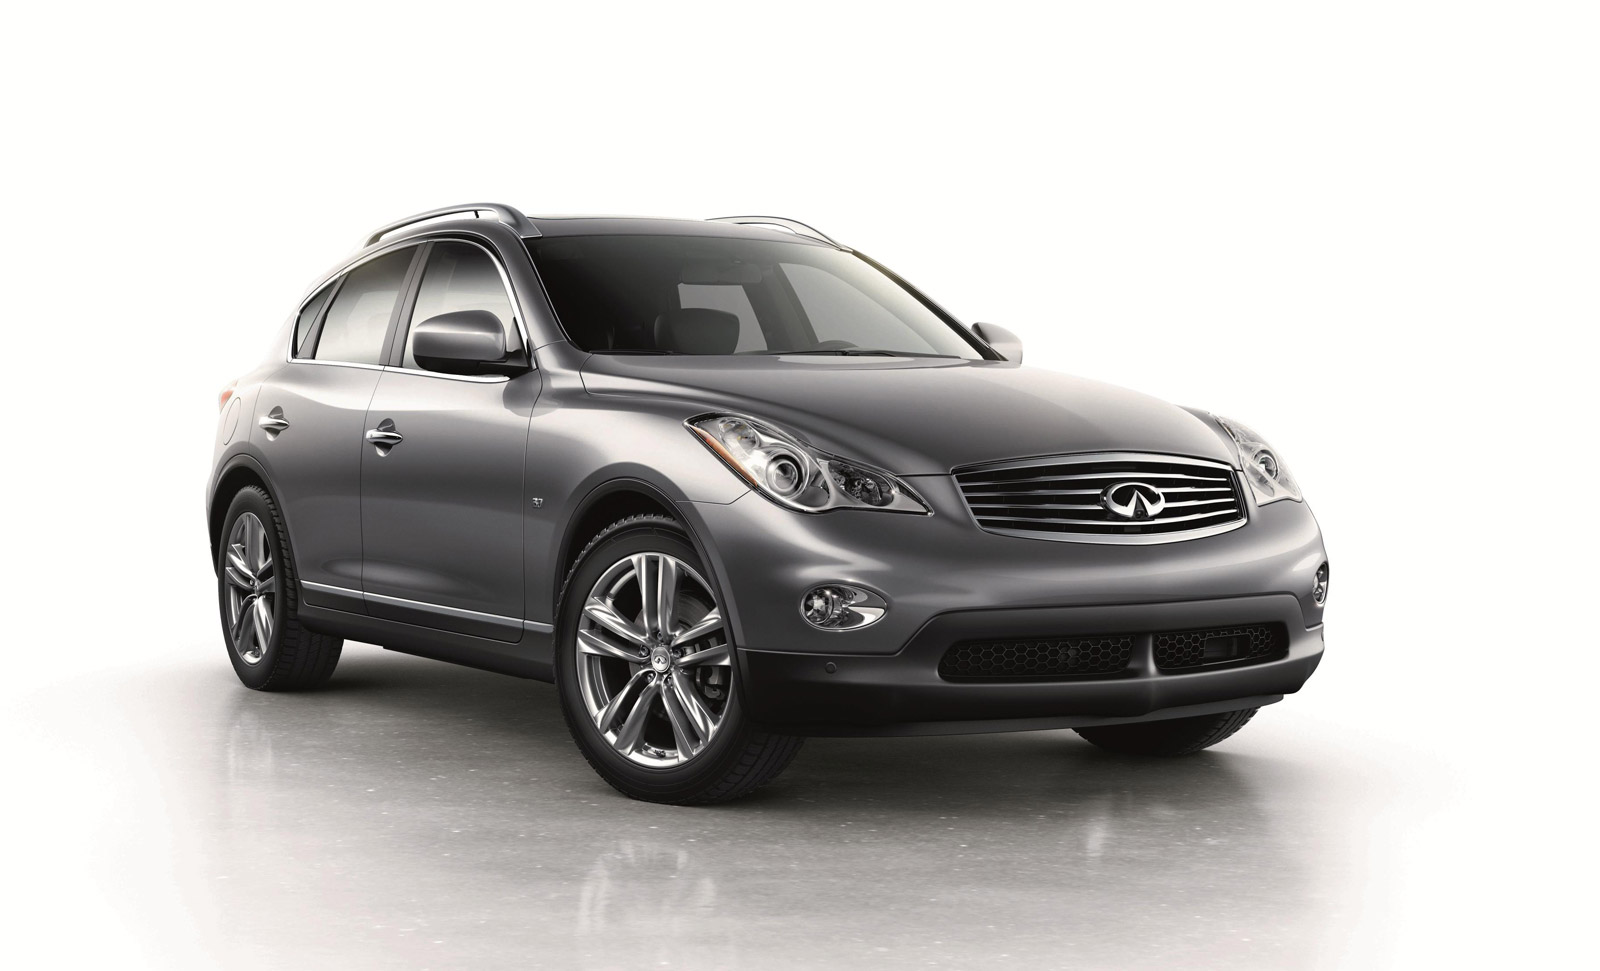 2015 Infiniti QX50 Review, Ratings, Specs, Prices, and Photos  The